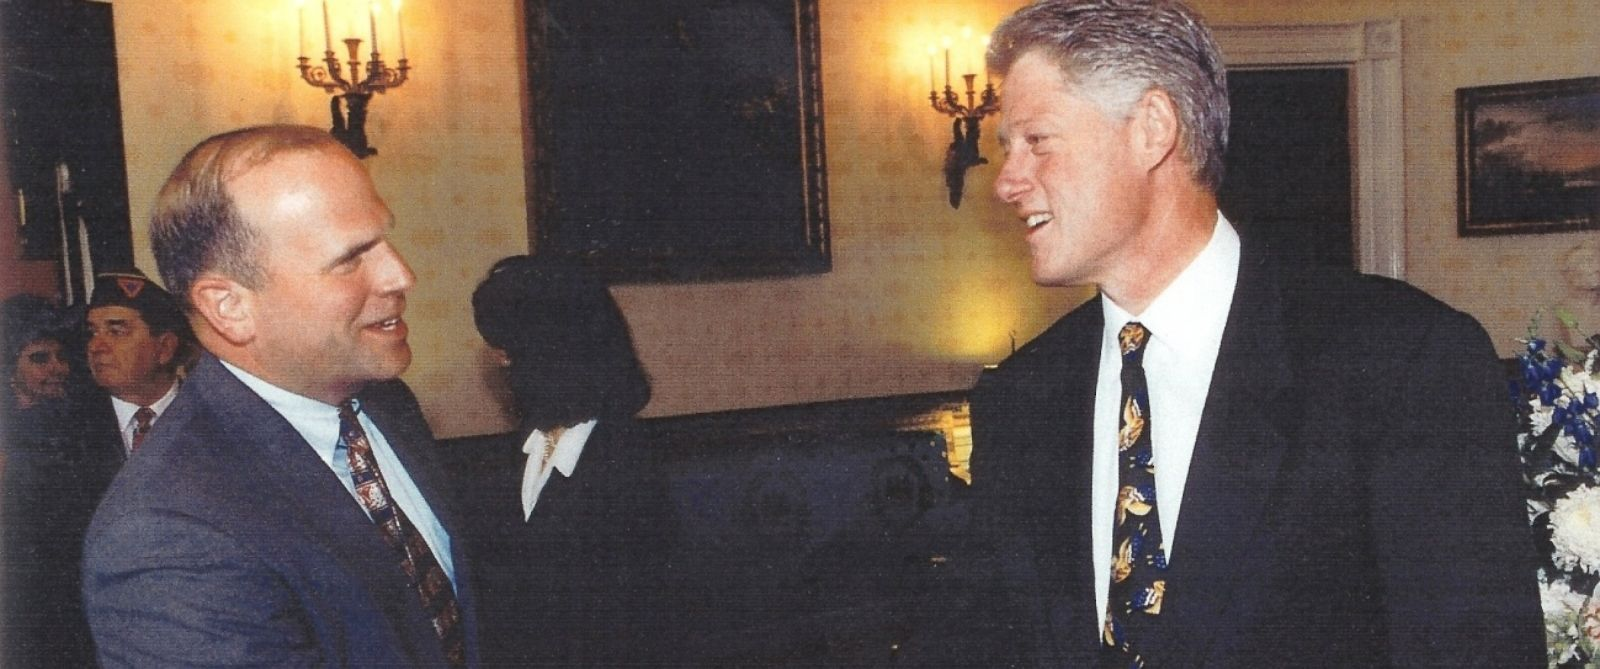 PHOTO: Col. Tim Milbrath with former President Bill Clinton.